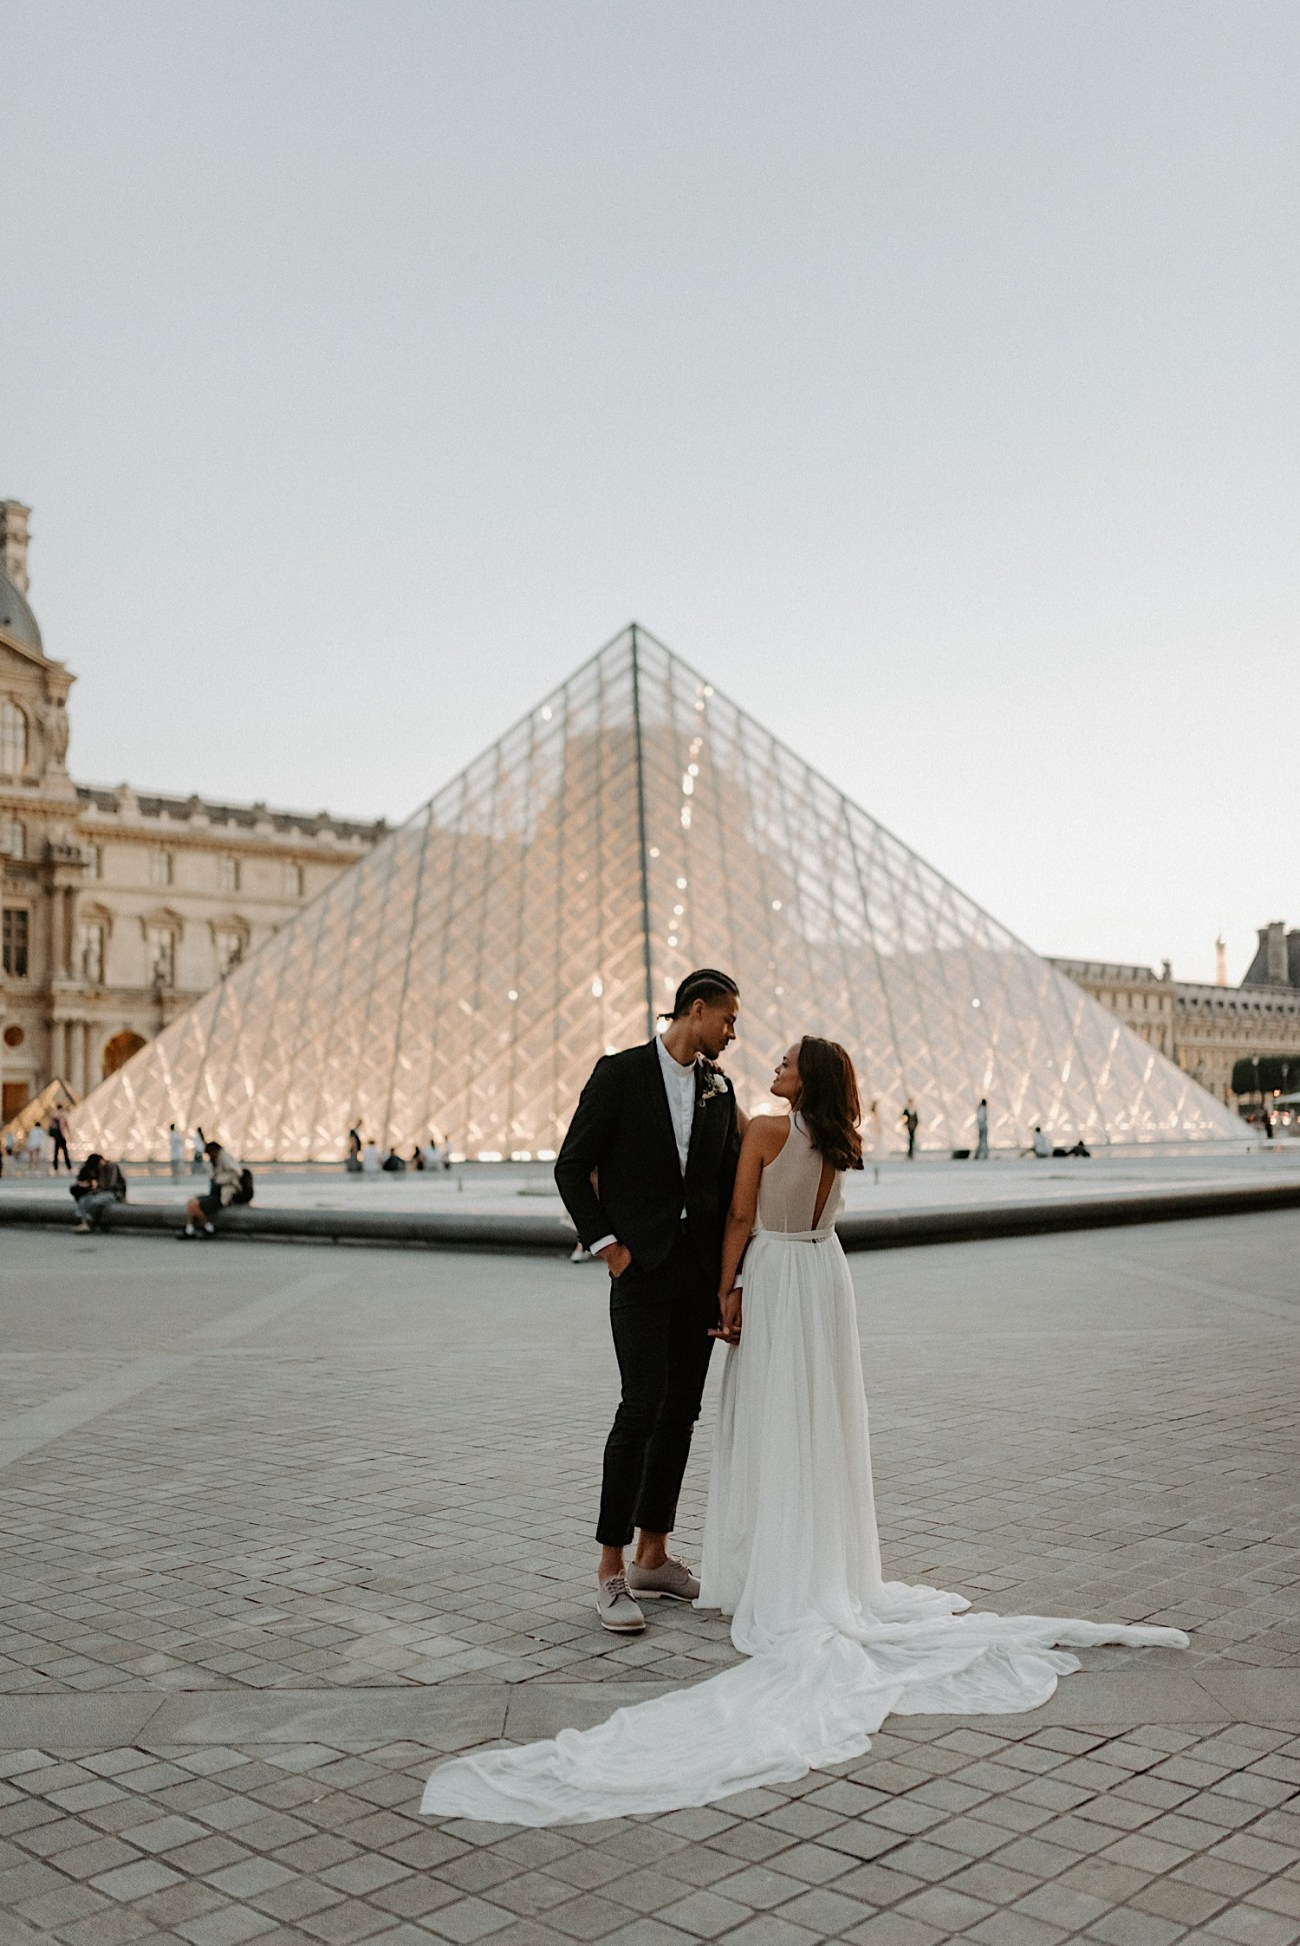 Paris Louvre Wedding Photos Paris Wedding Photographer Destination Wedding France Anais Possamai Photography 25